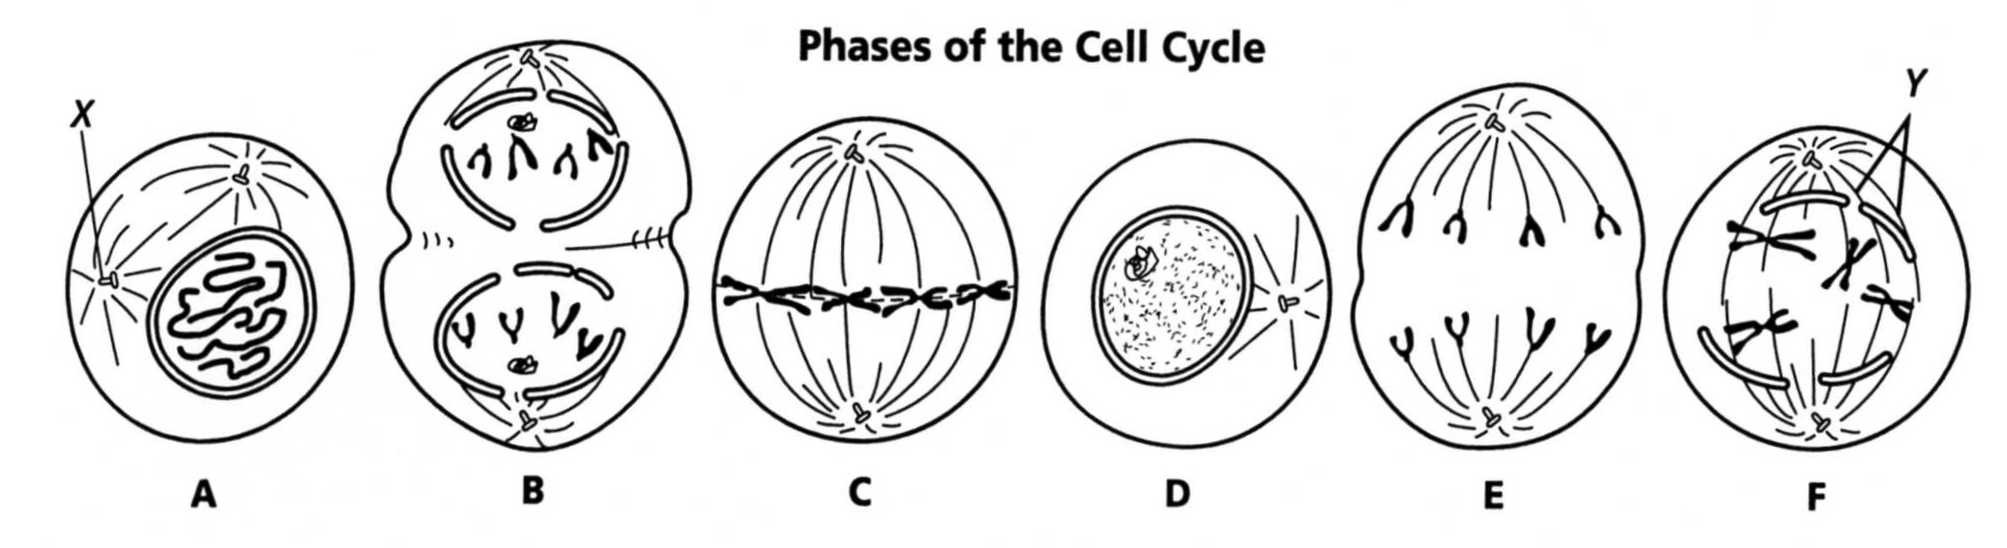 Phases Of The Cell Cycle Worksheet Answers Free Worksheets Library – Mitosis Worksheet Middle School